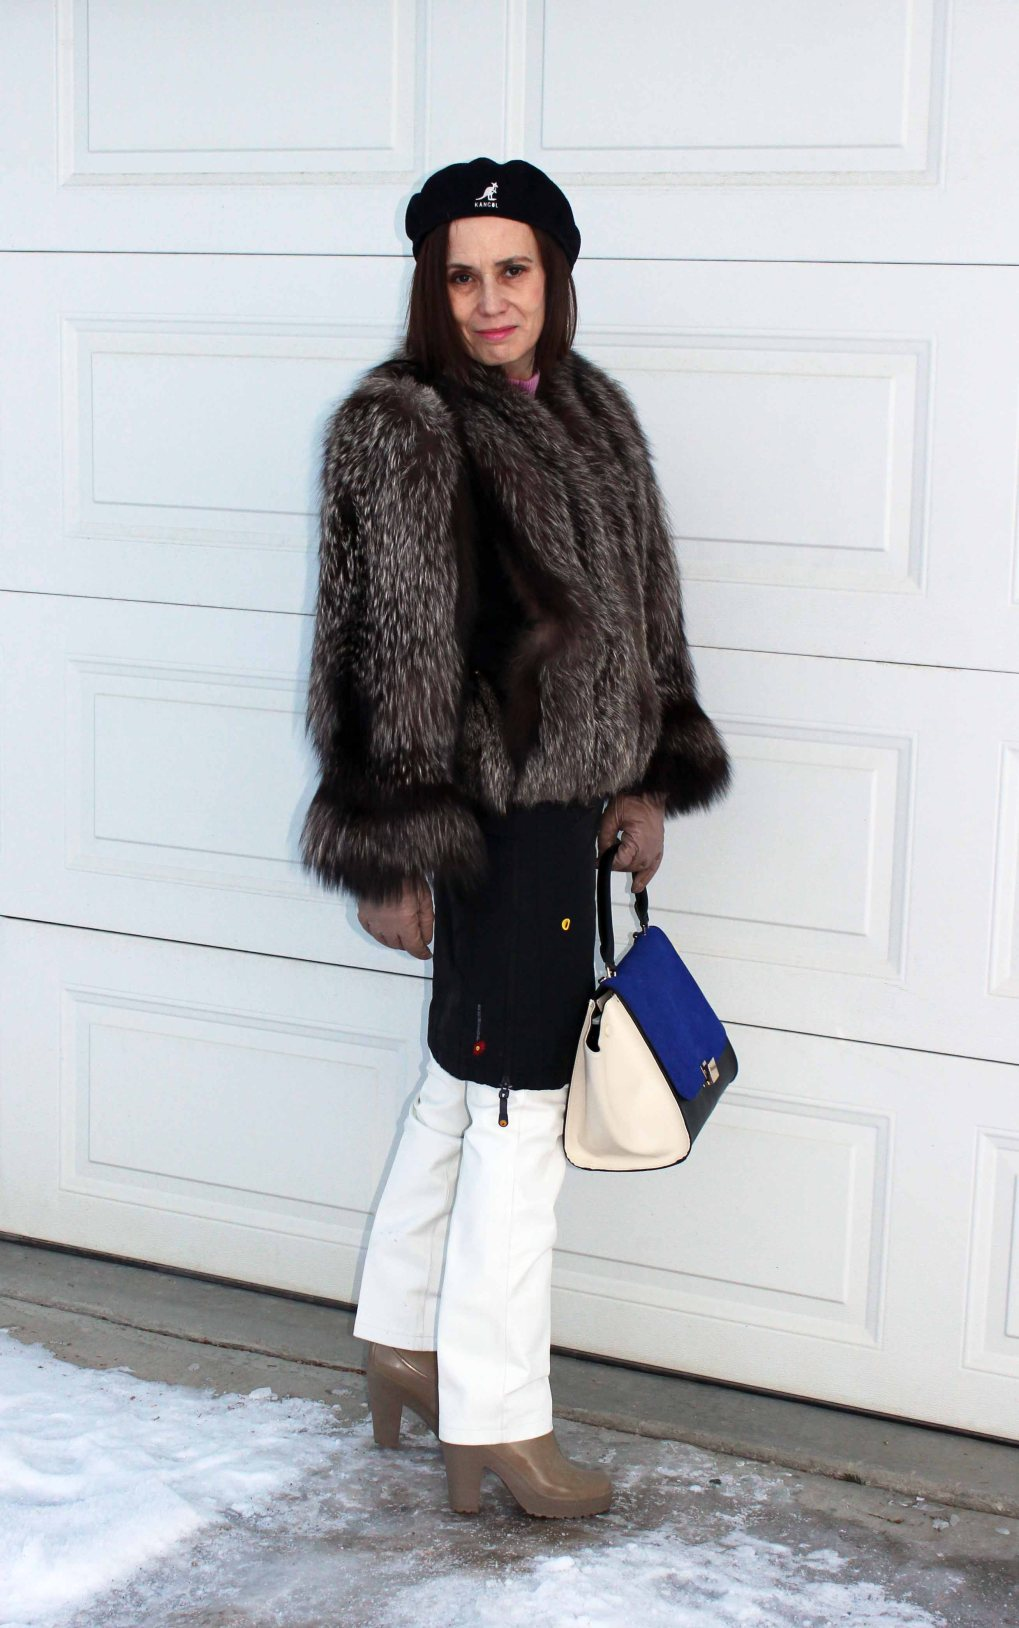 #fashionover50 mature woman wearing winter wind protecting outerwear